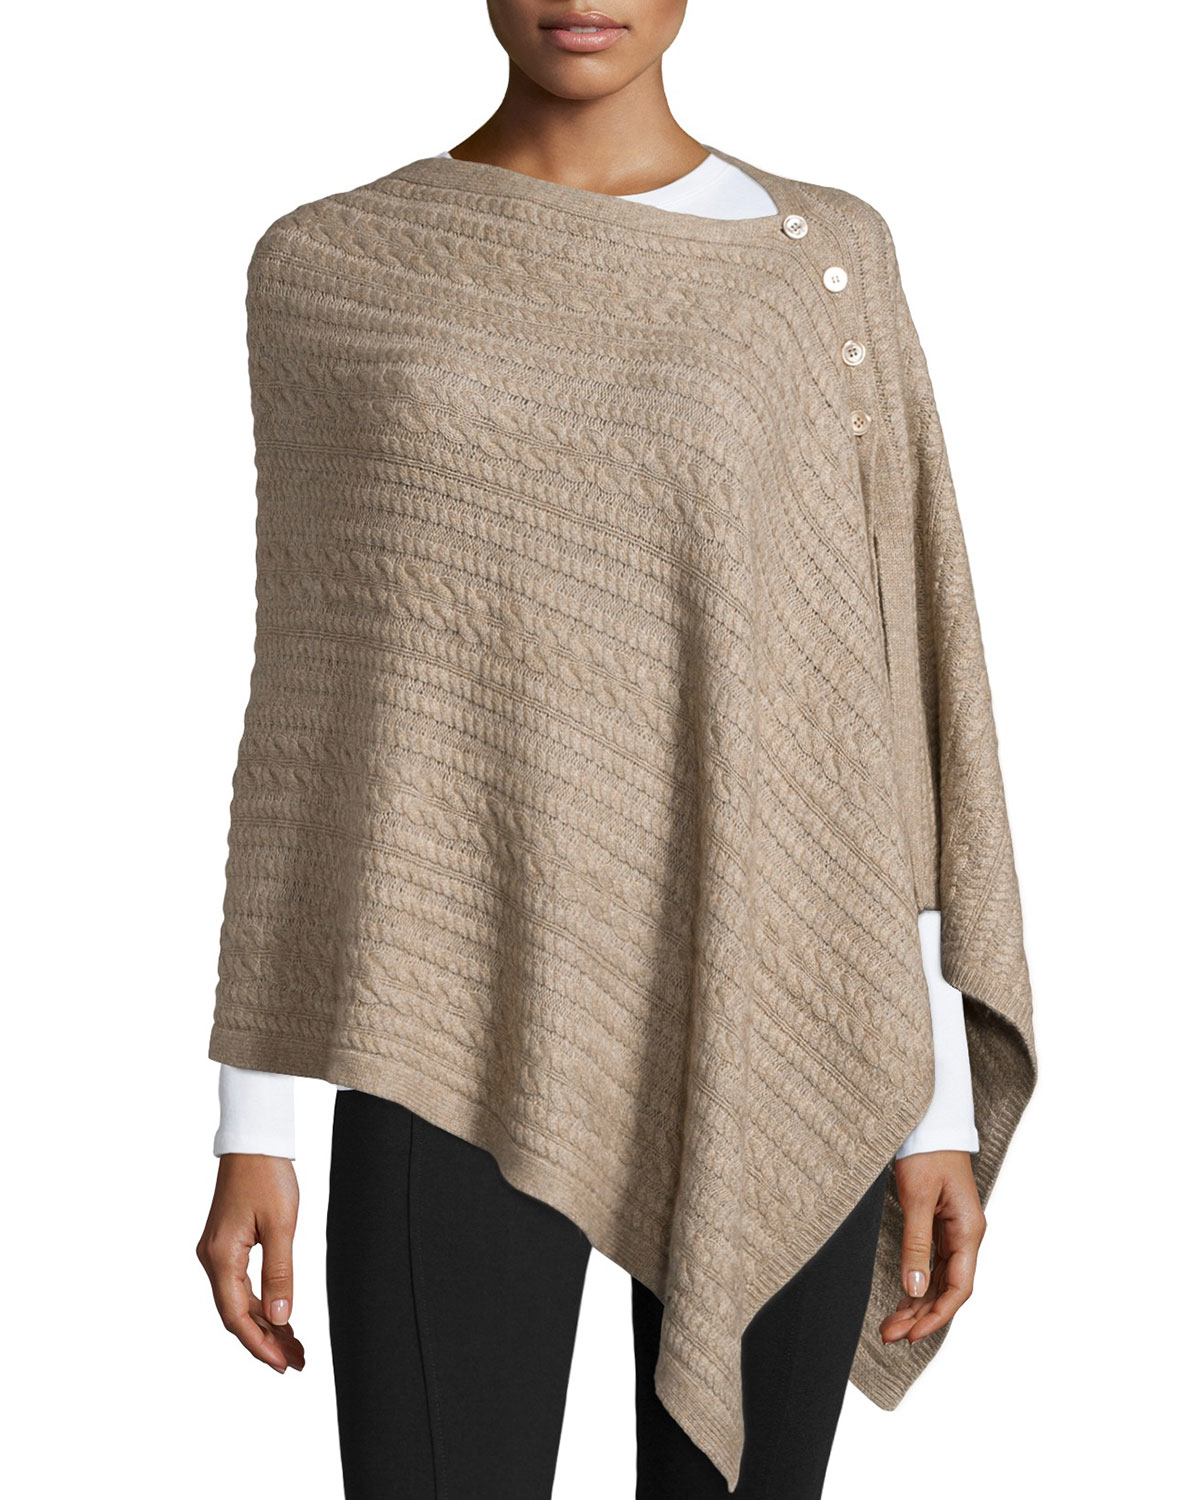 Knitting Pattern Side Button Poncho : Neiman marcus Asymmetric Button-front Cable-knit Poncho in ...